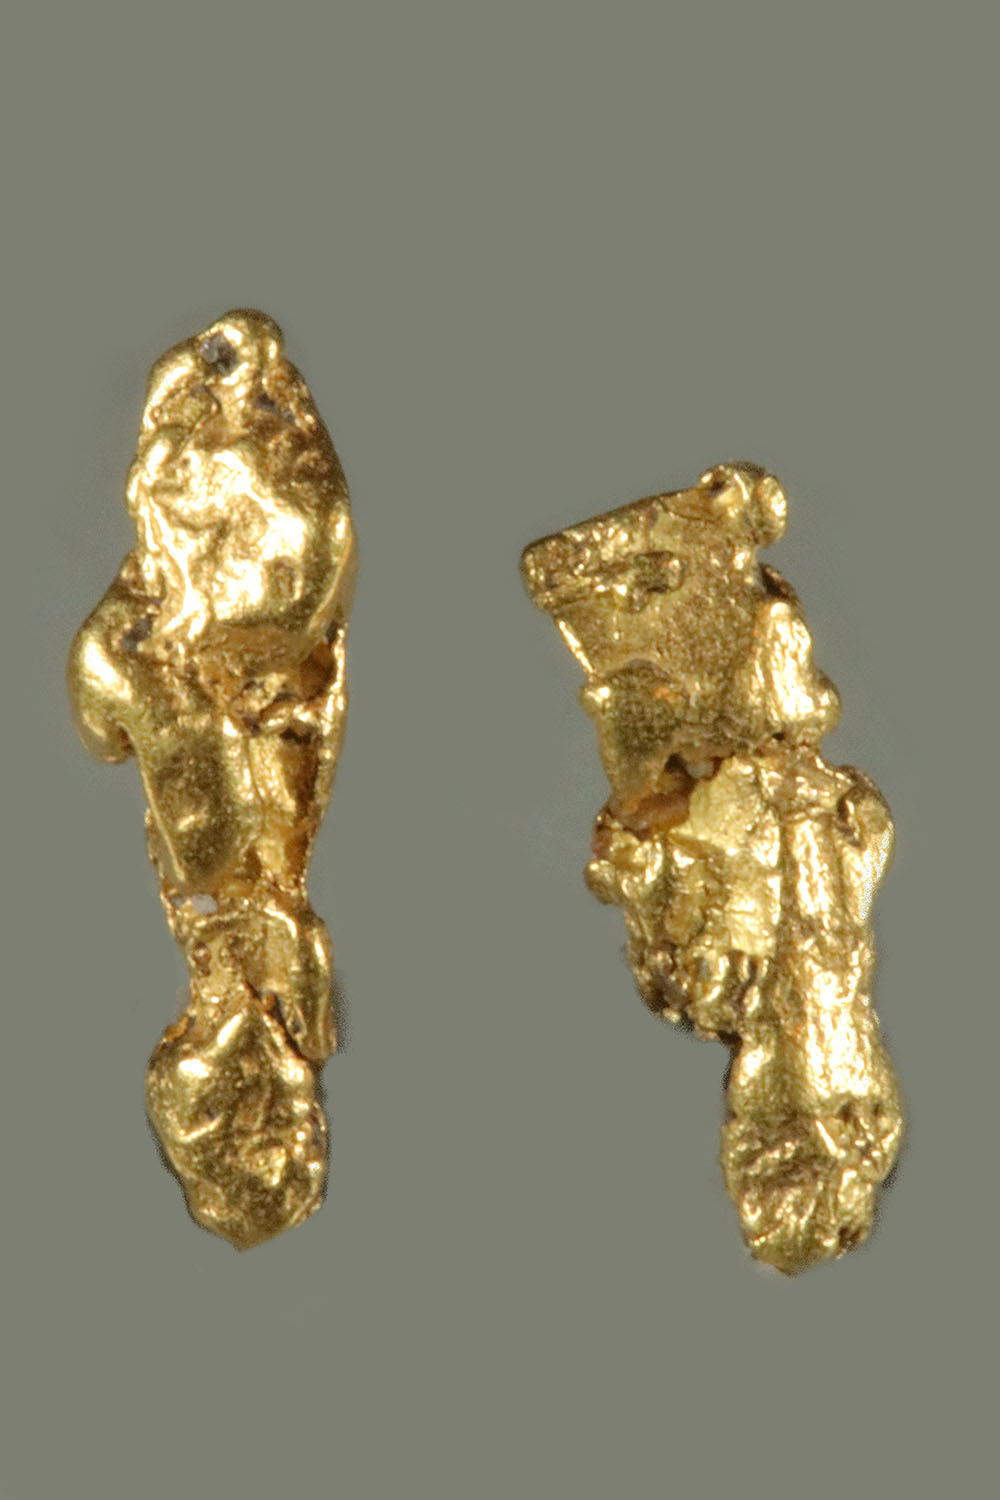 Elongated Natural Gold Nuggets from the Bering Sea